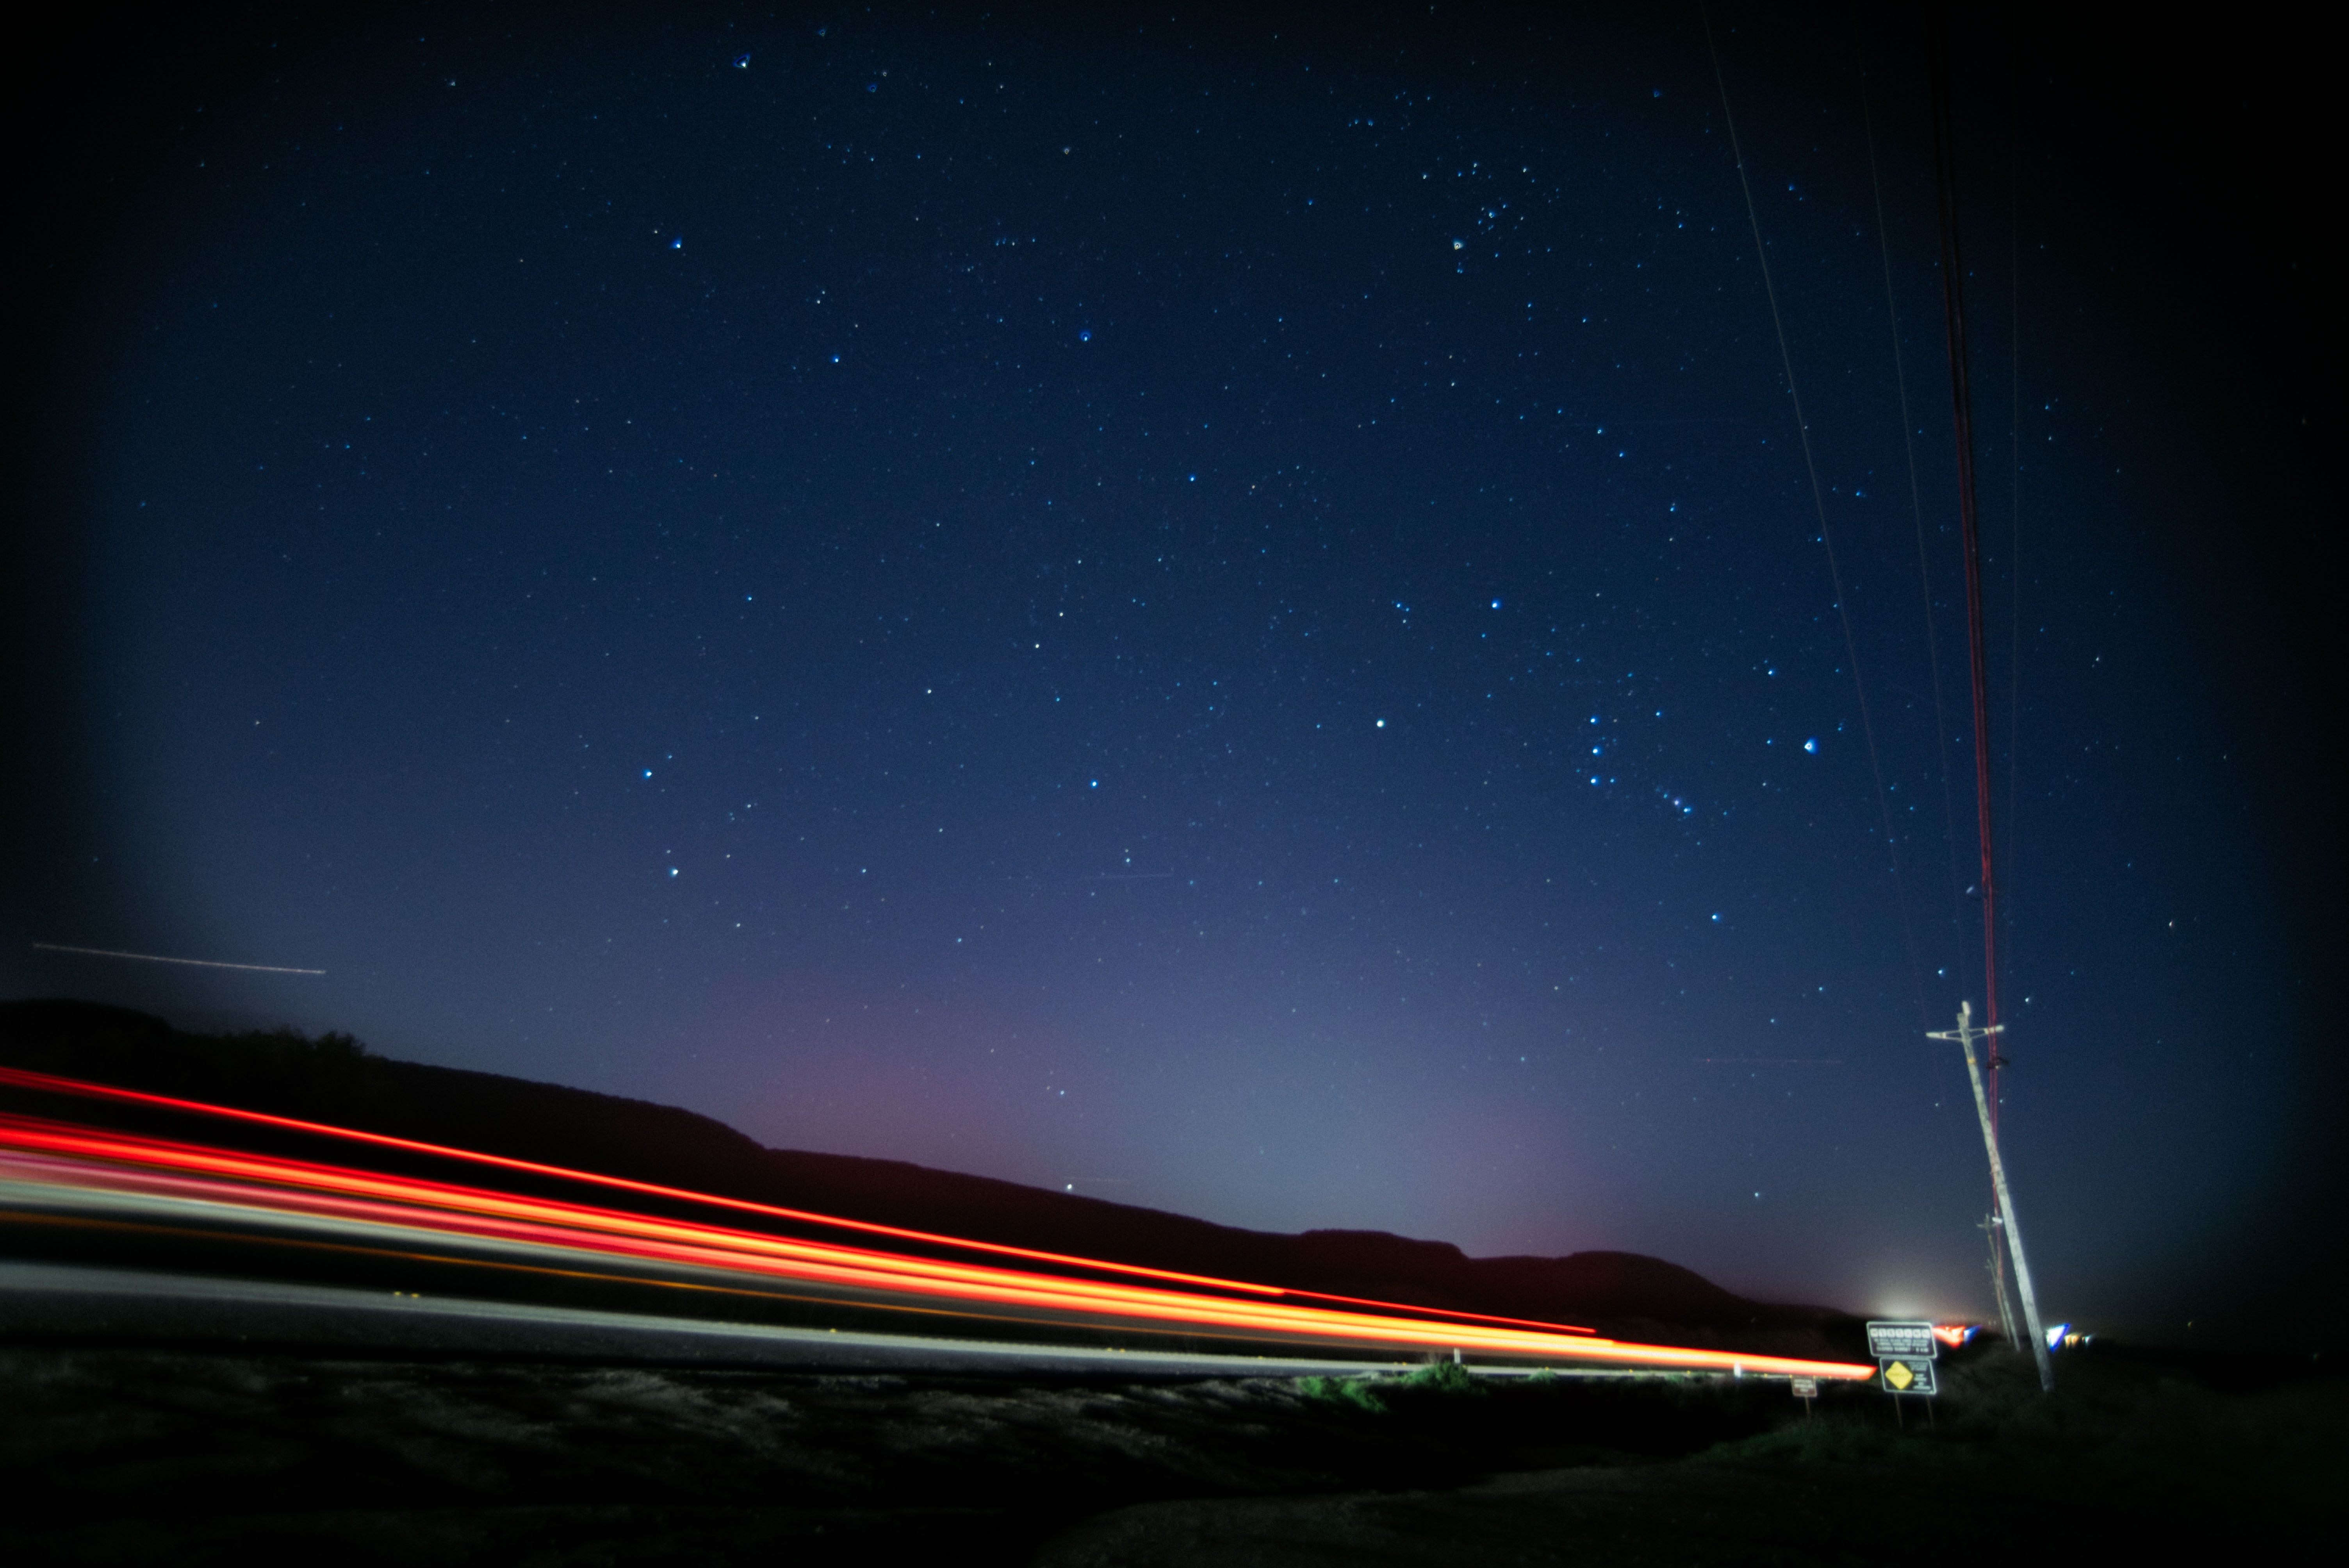 A slow shutter image depicting traffic in motion under a starlit sky on California State Route 1